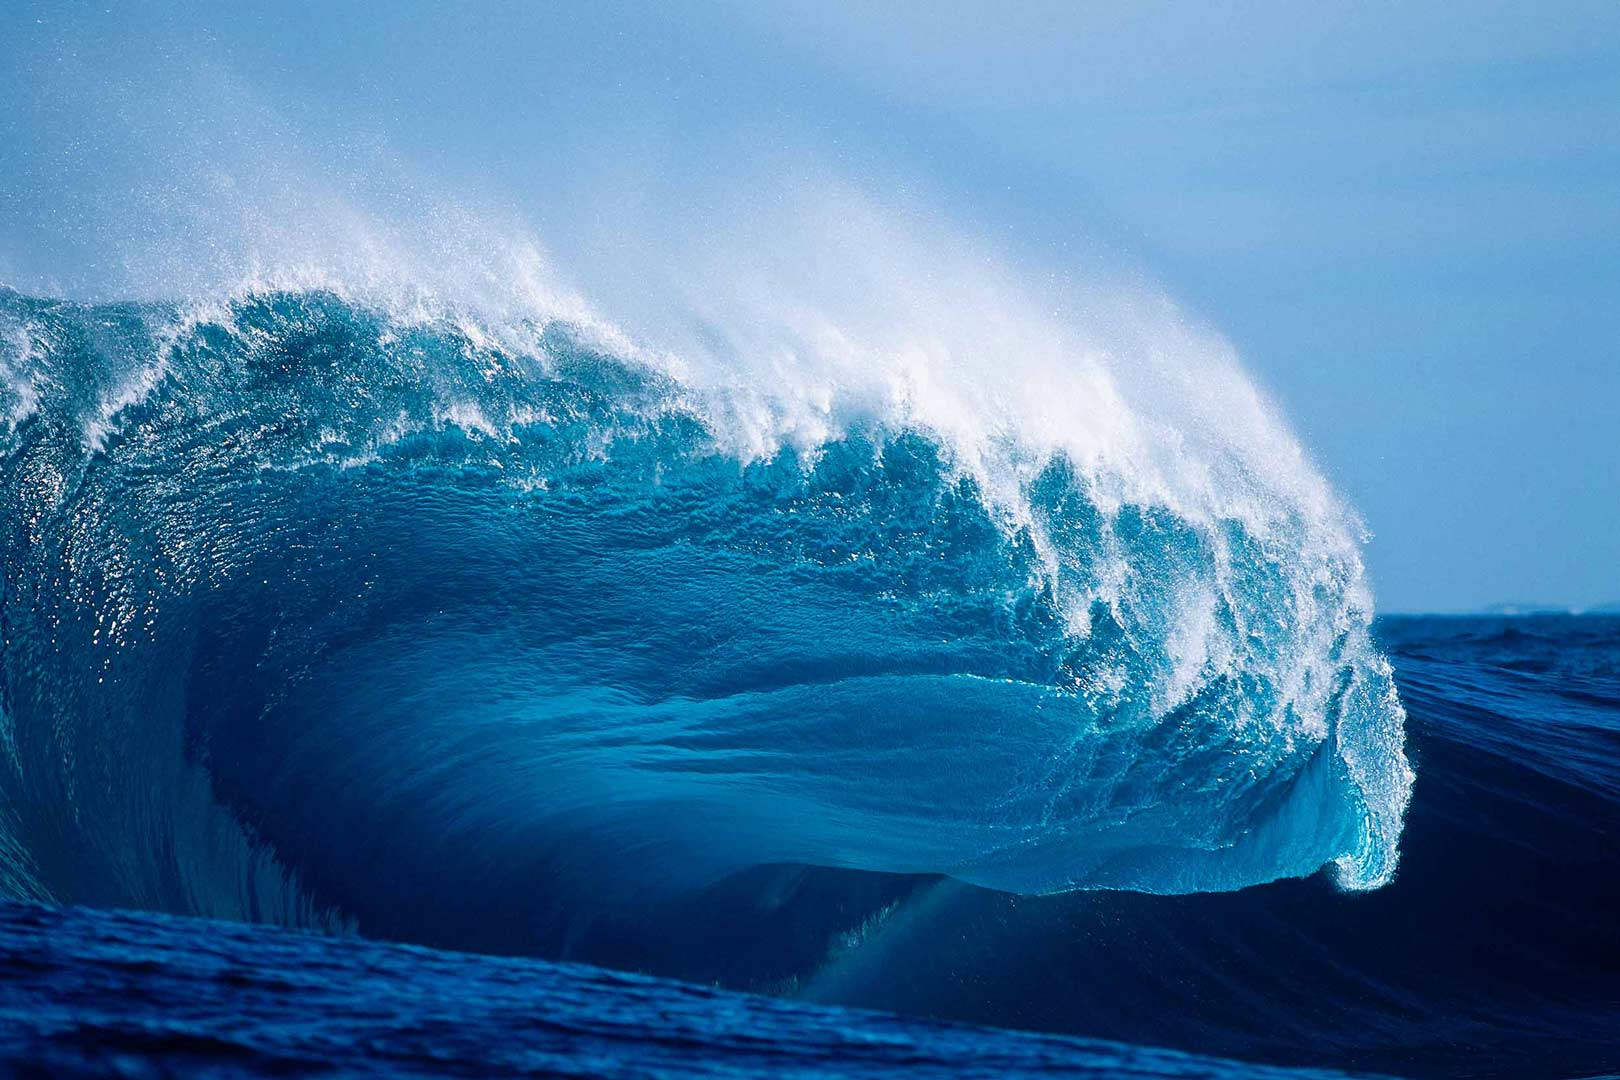 EXTREME SURF PHOTOGRAPHY The original 'Cyclops' from a slab hunting expedition